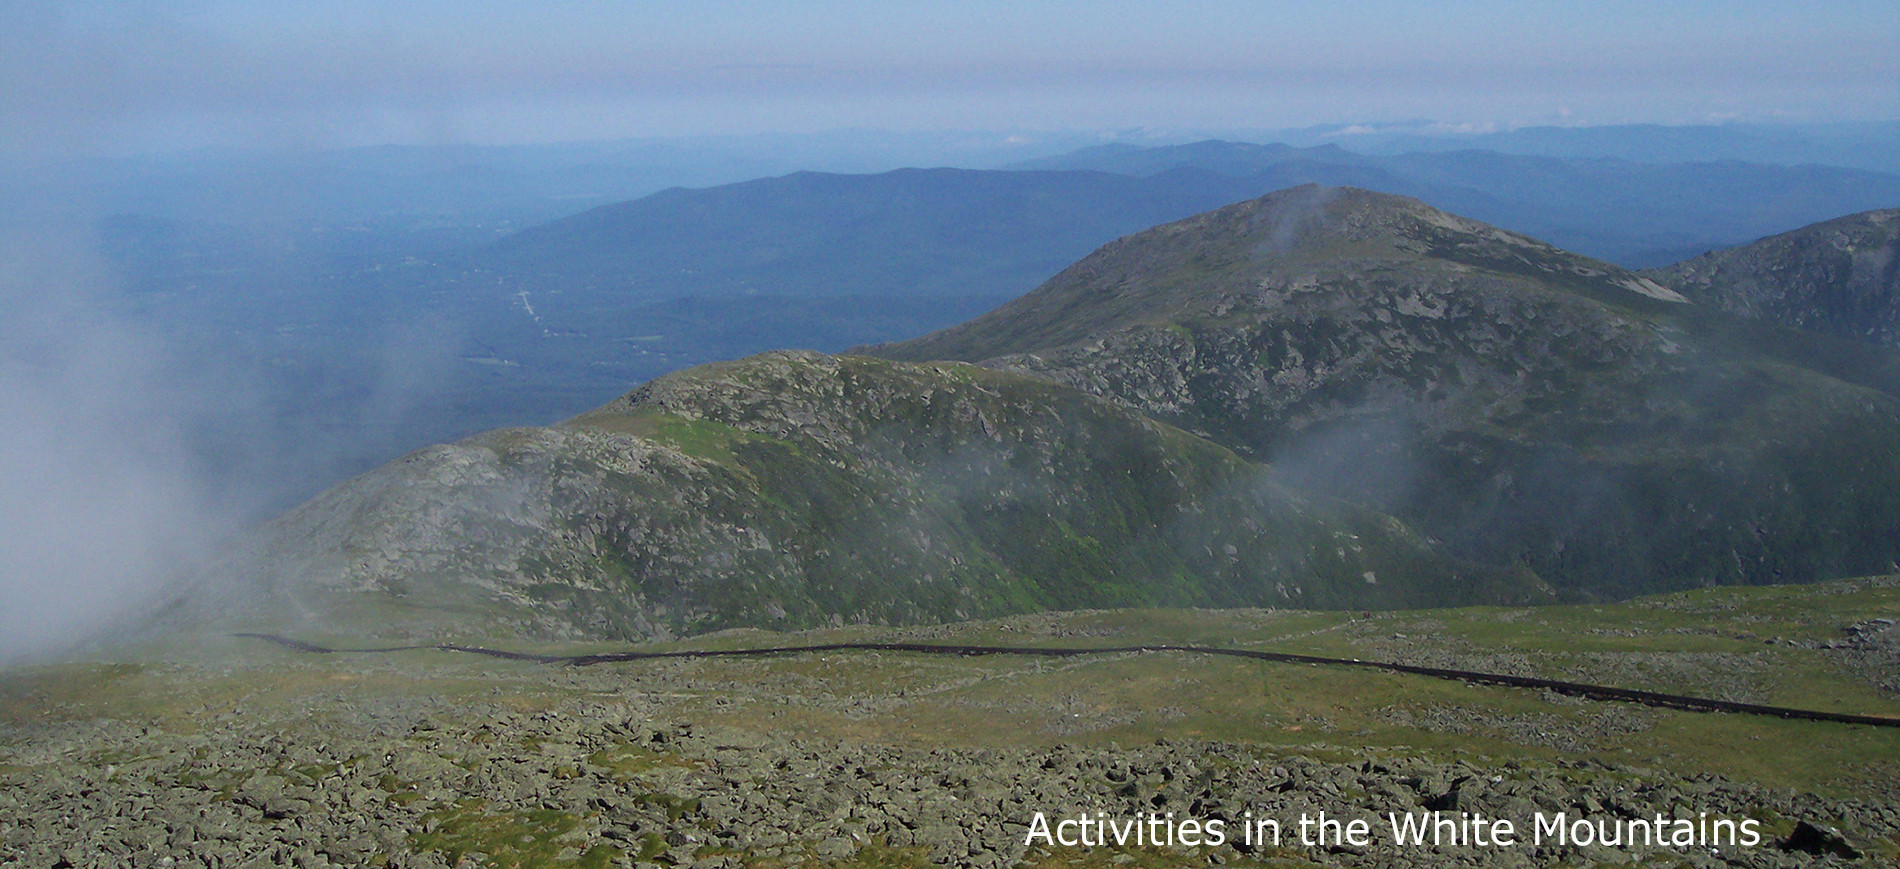 View from top of Mt Washington ~ Activities in the White Mountains